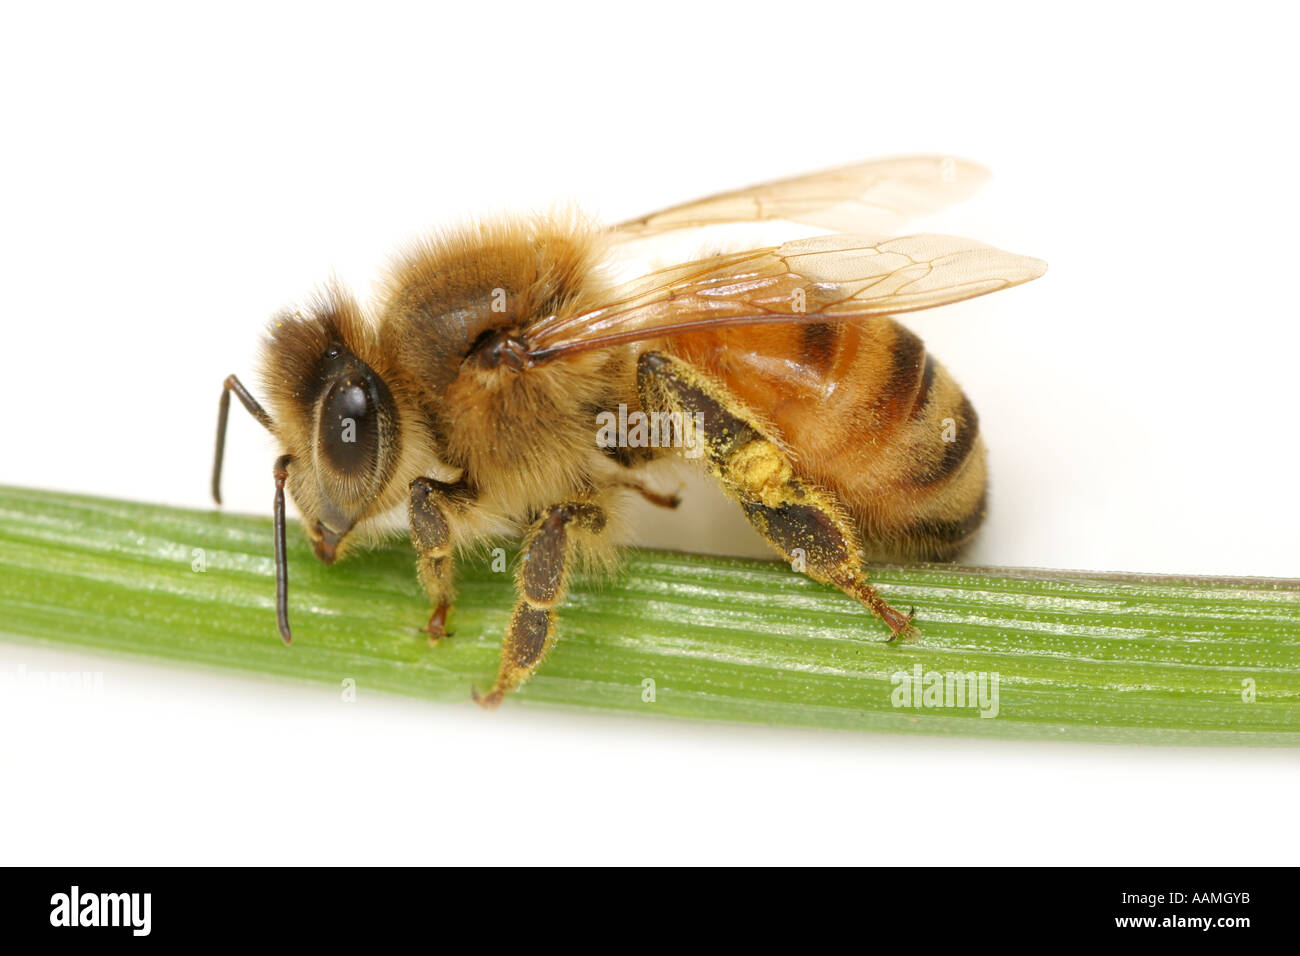 Honey bee on a green grass straw on white background - Stock Image